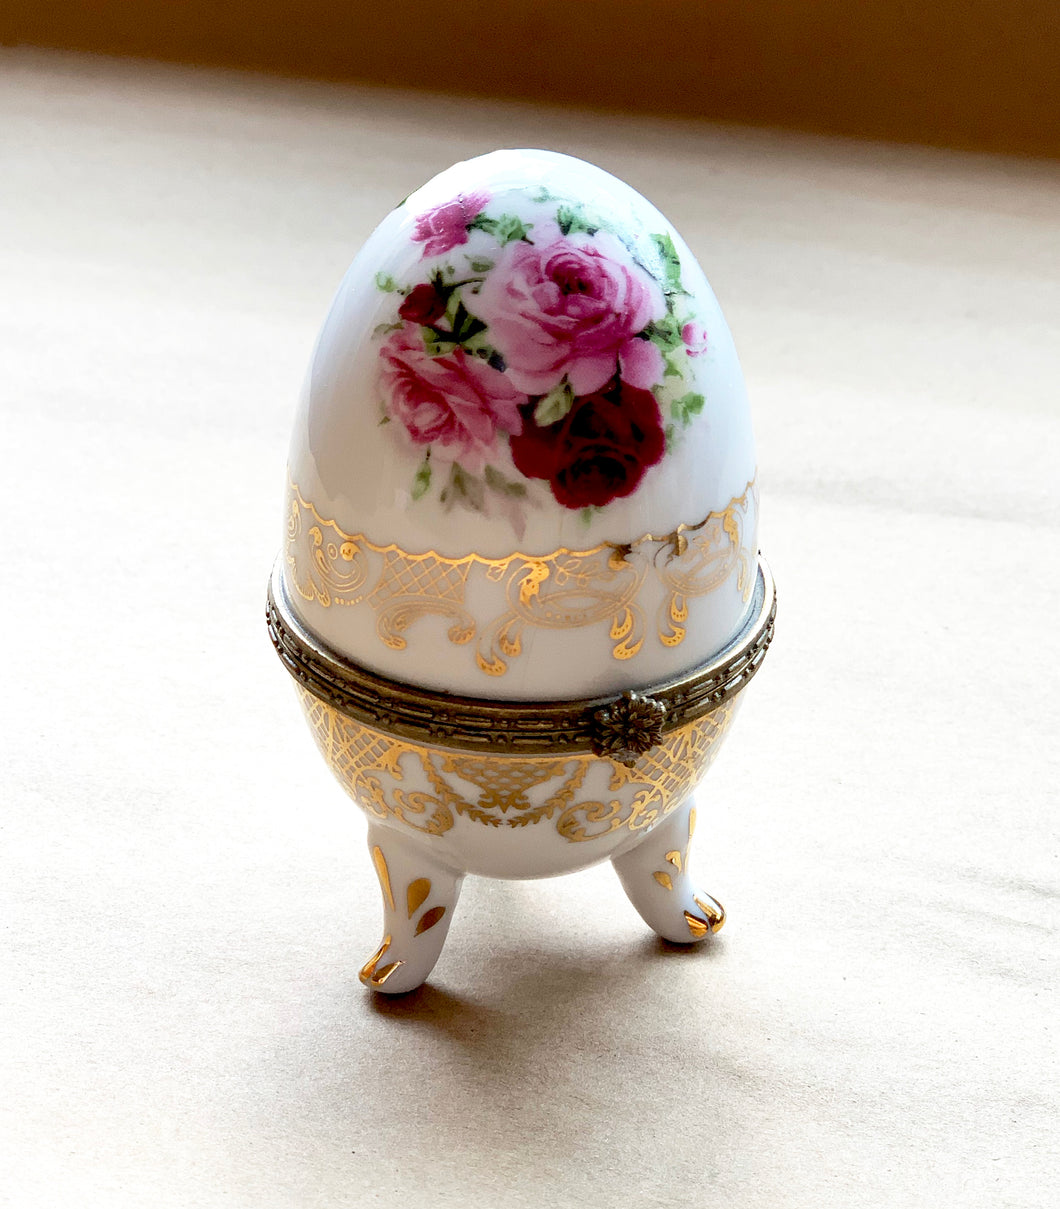 Porcelain Egg with Roses and Gold Painted Surround, Collectible